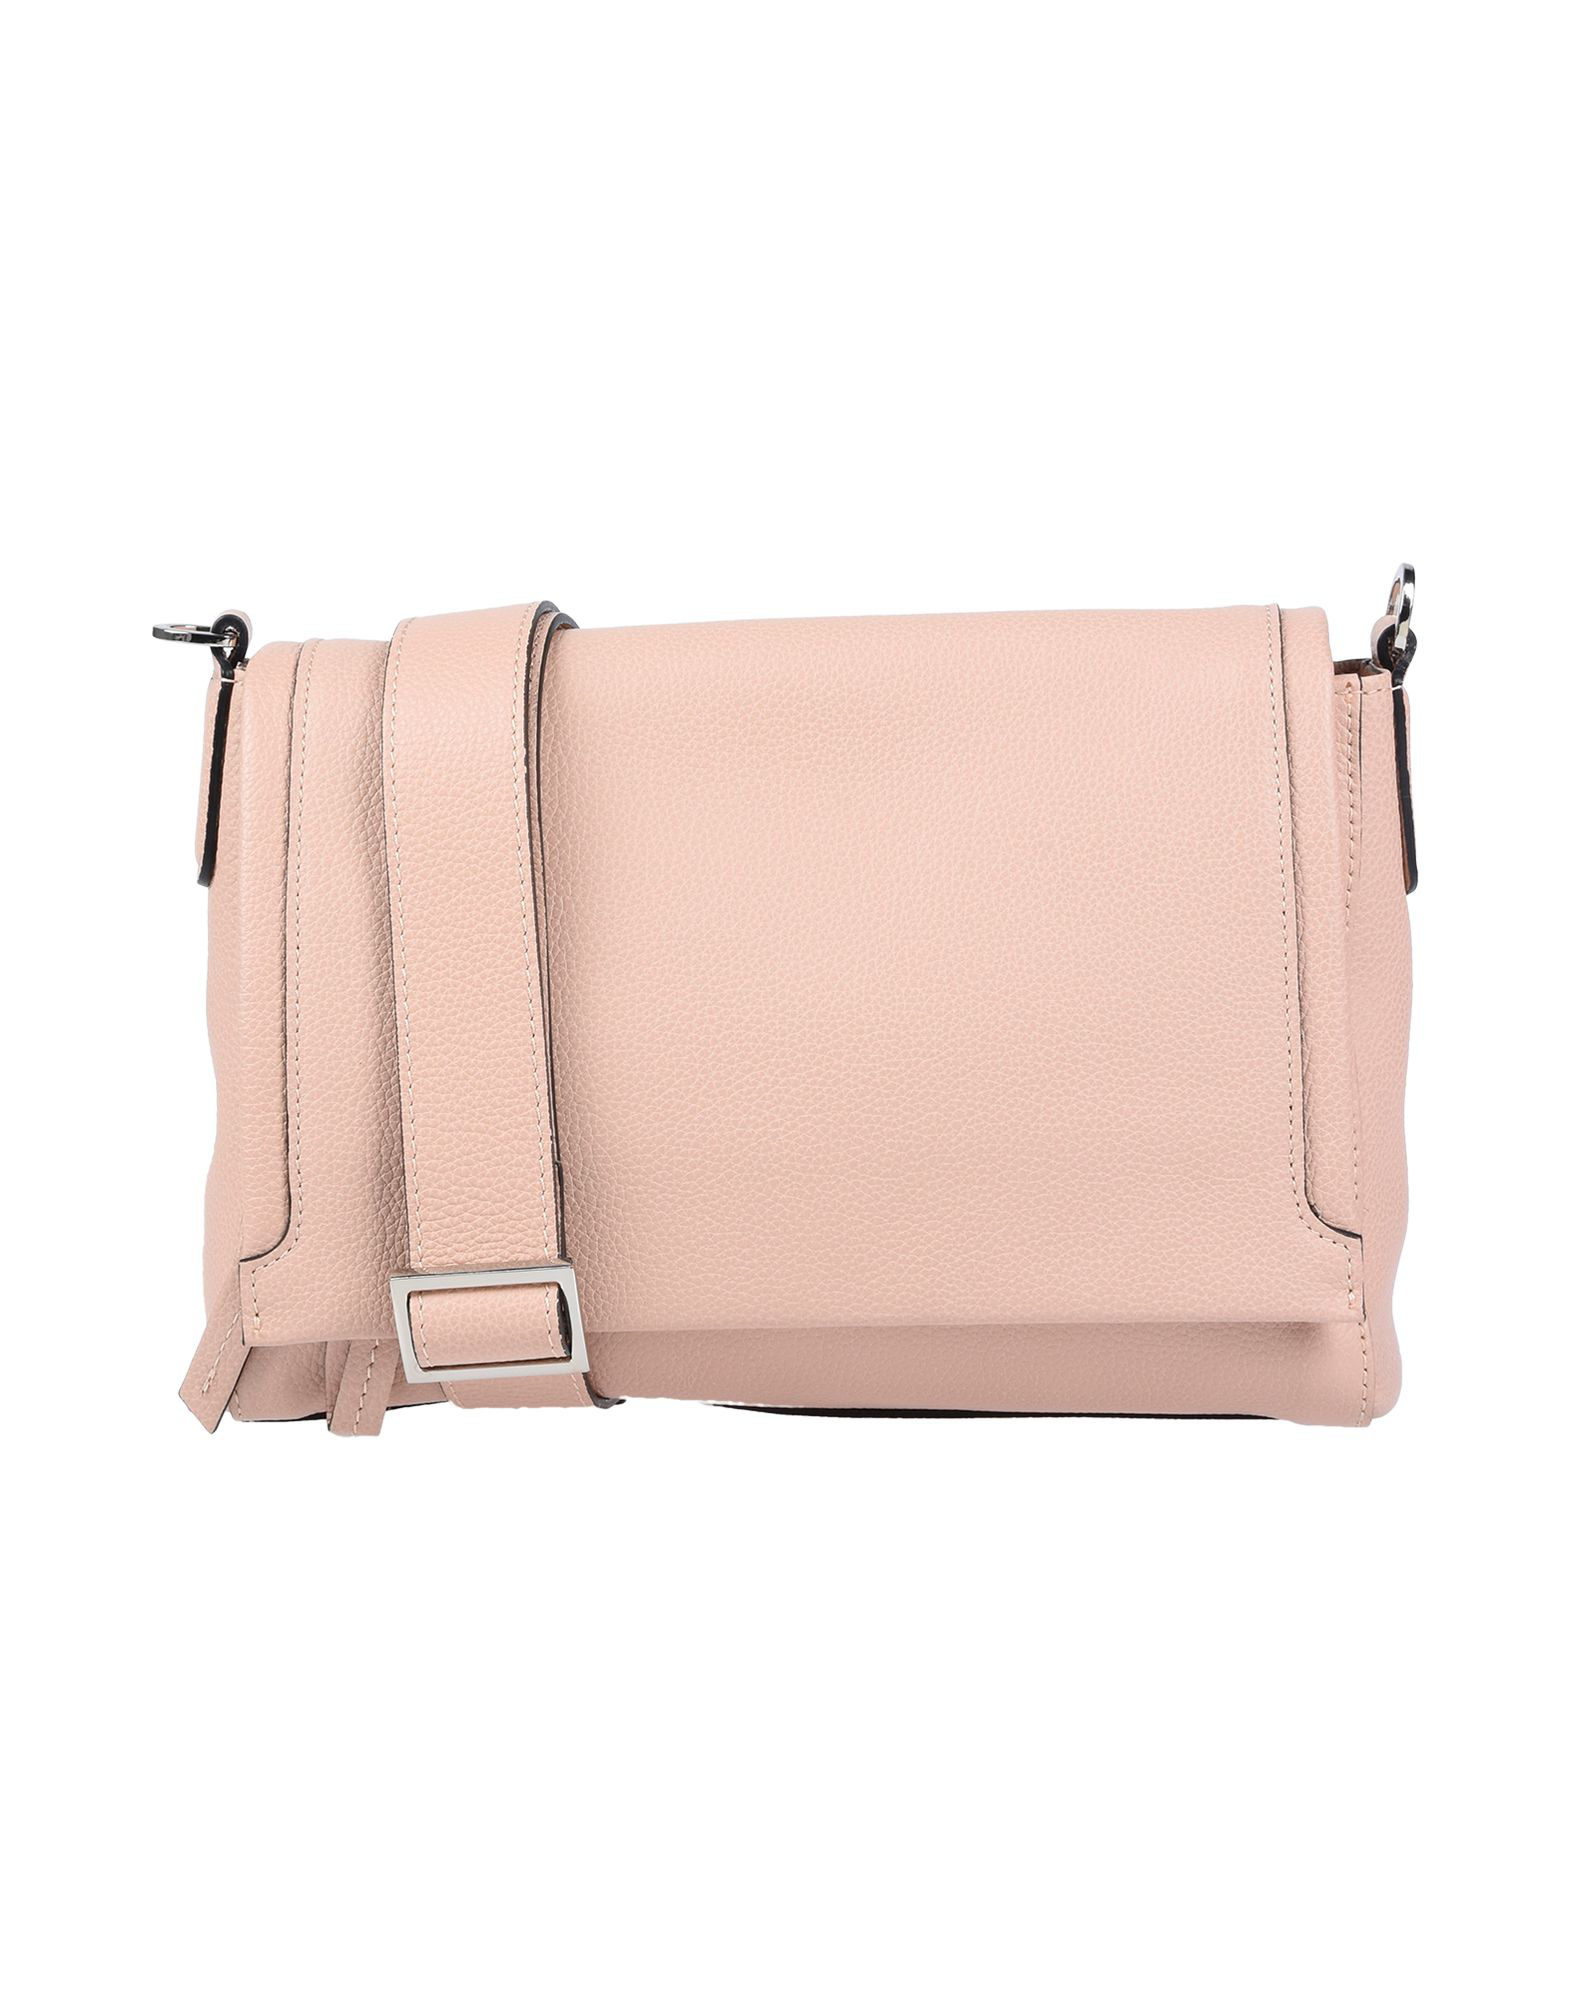 68719730a Gianni Chiarini Handbags In Pale Pink | ModeSens